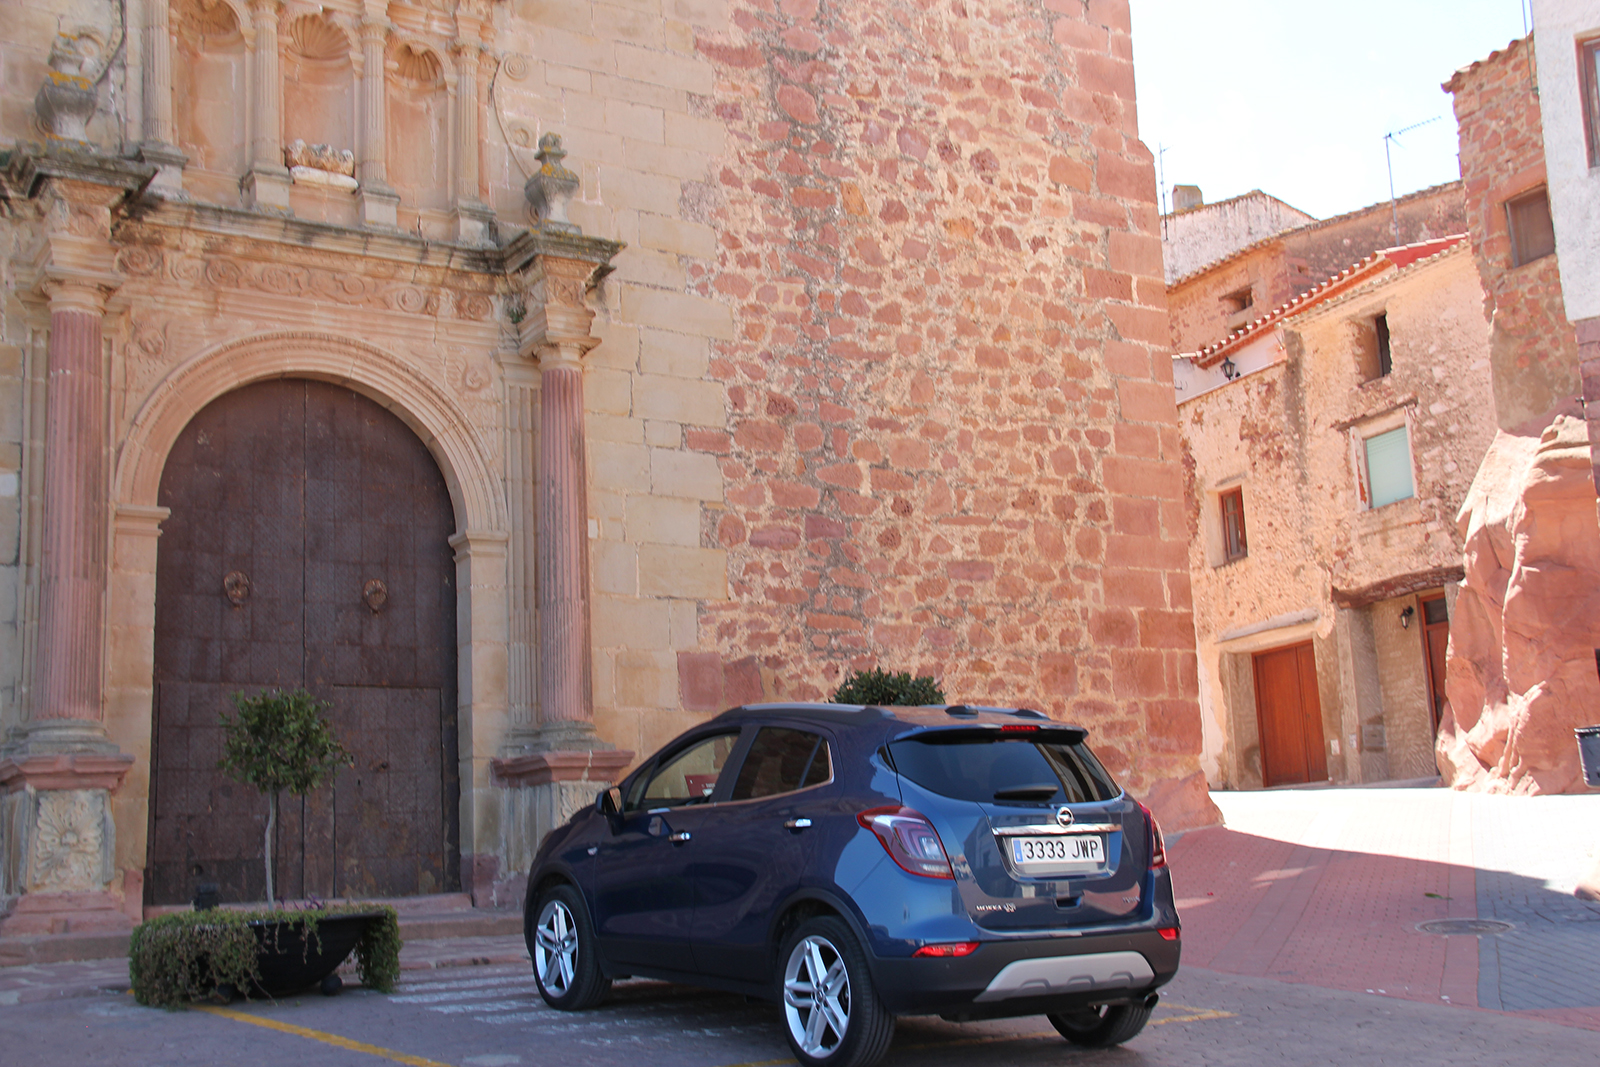 Vilafames Spain car outside church